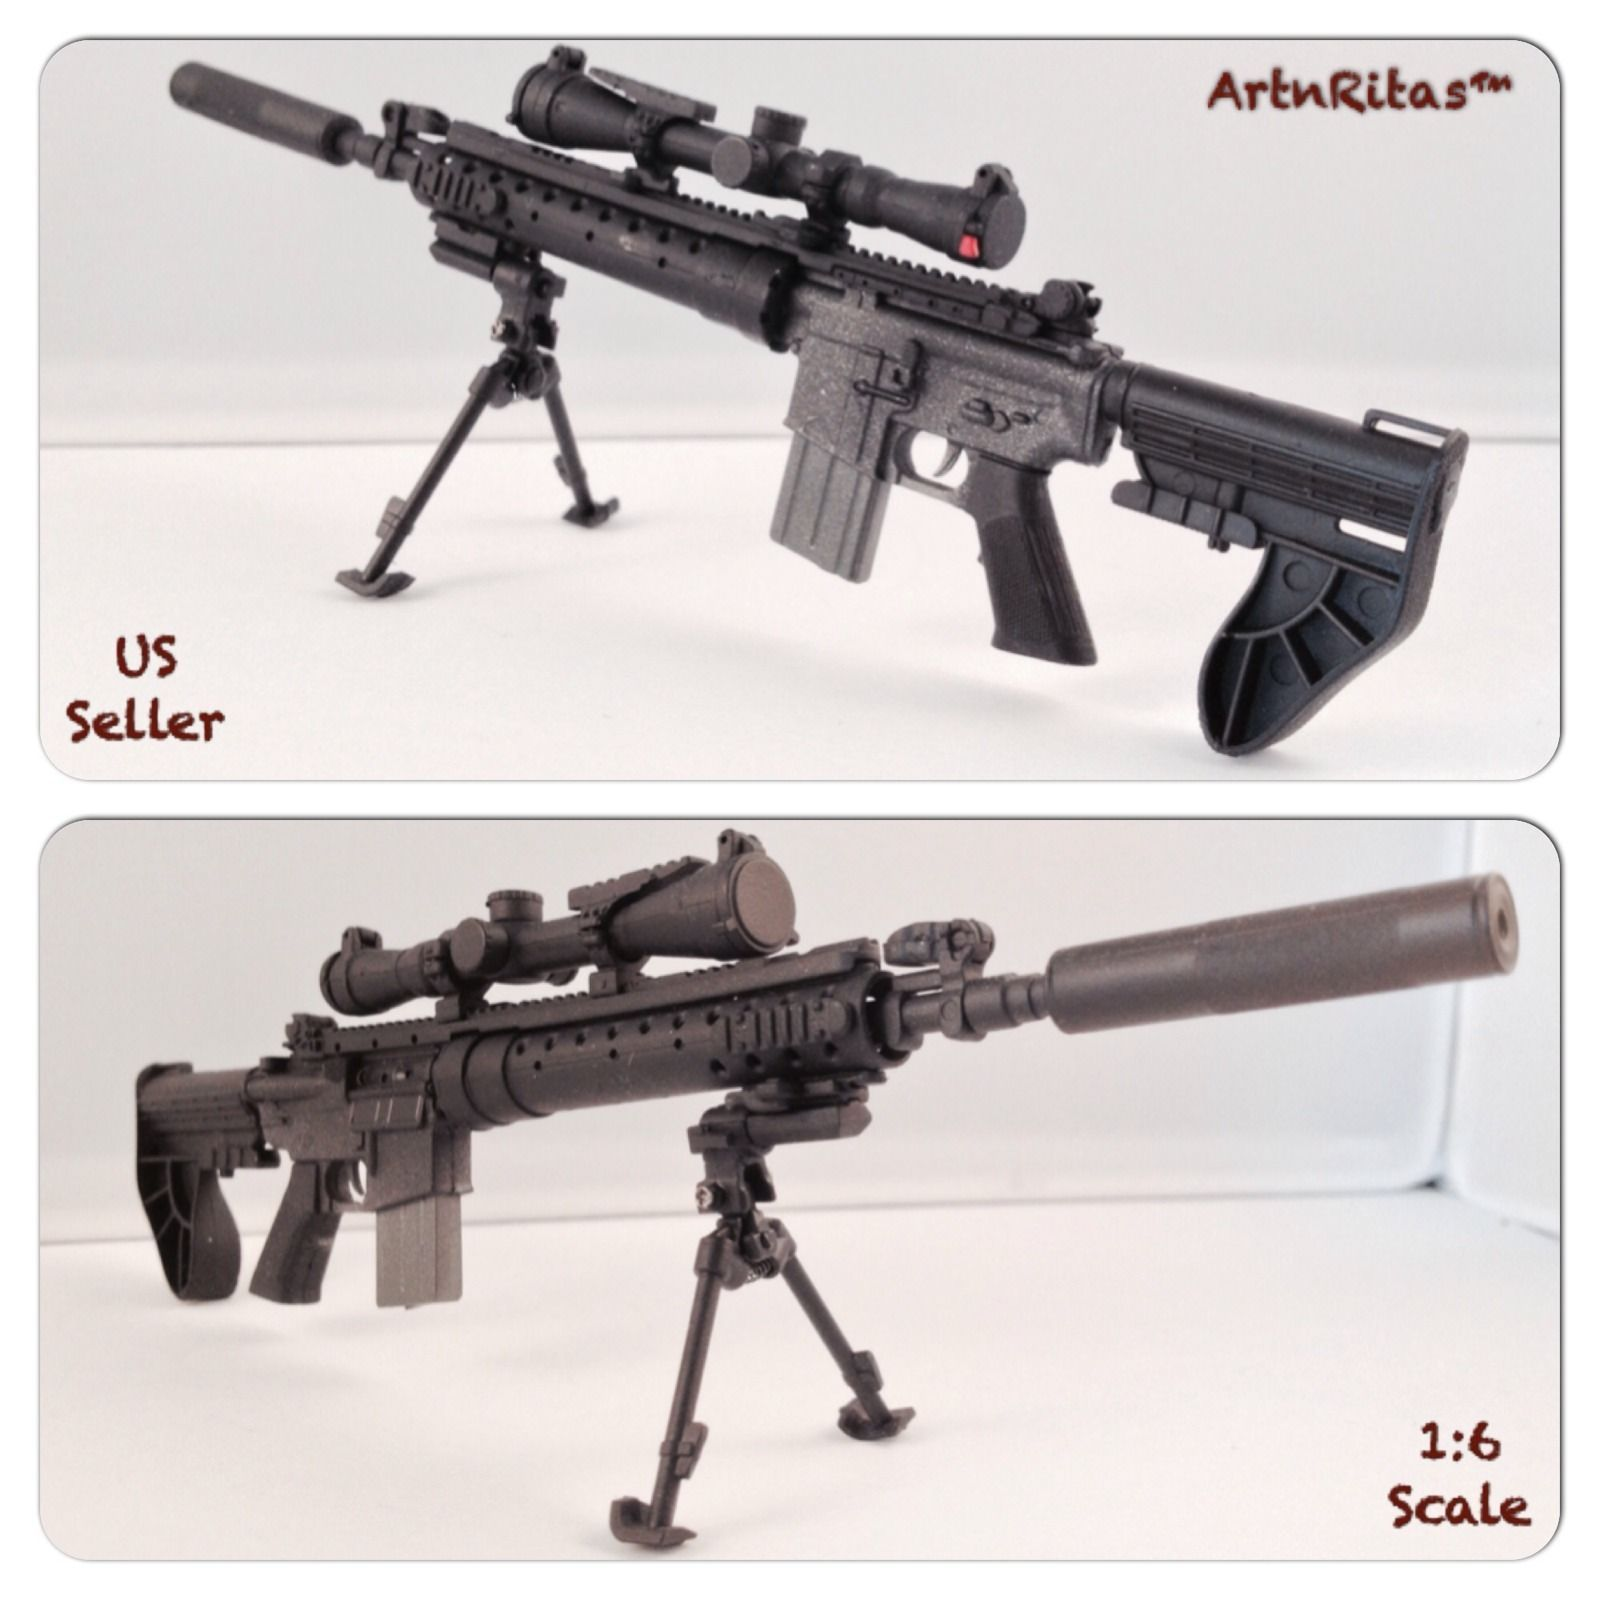 Toy box metal decor wall art shop play children store a180 ebay - 1 6 Scale Hot M4 Weapon Sniper Rifle With Scope For 12 Action Figure Toys